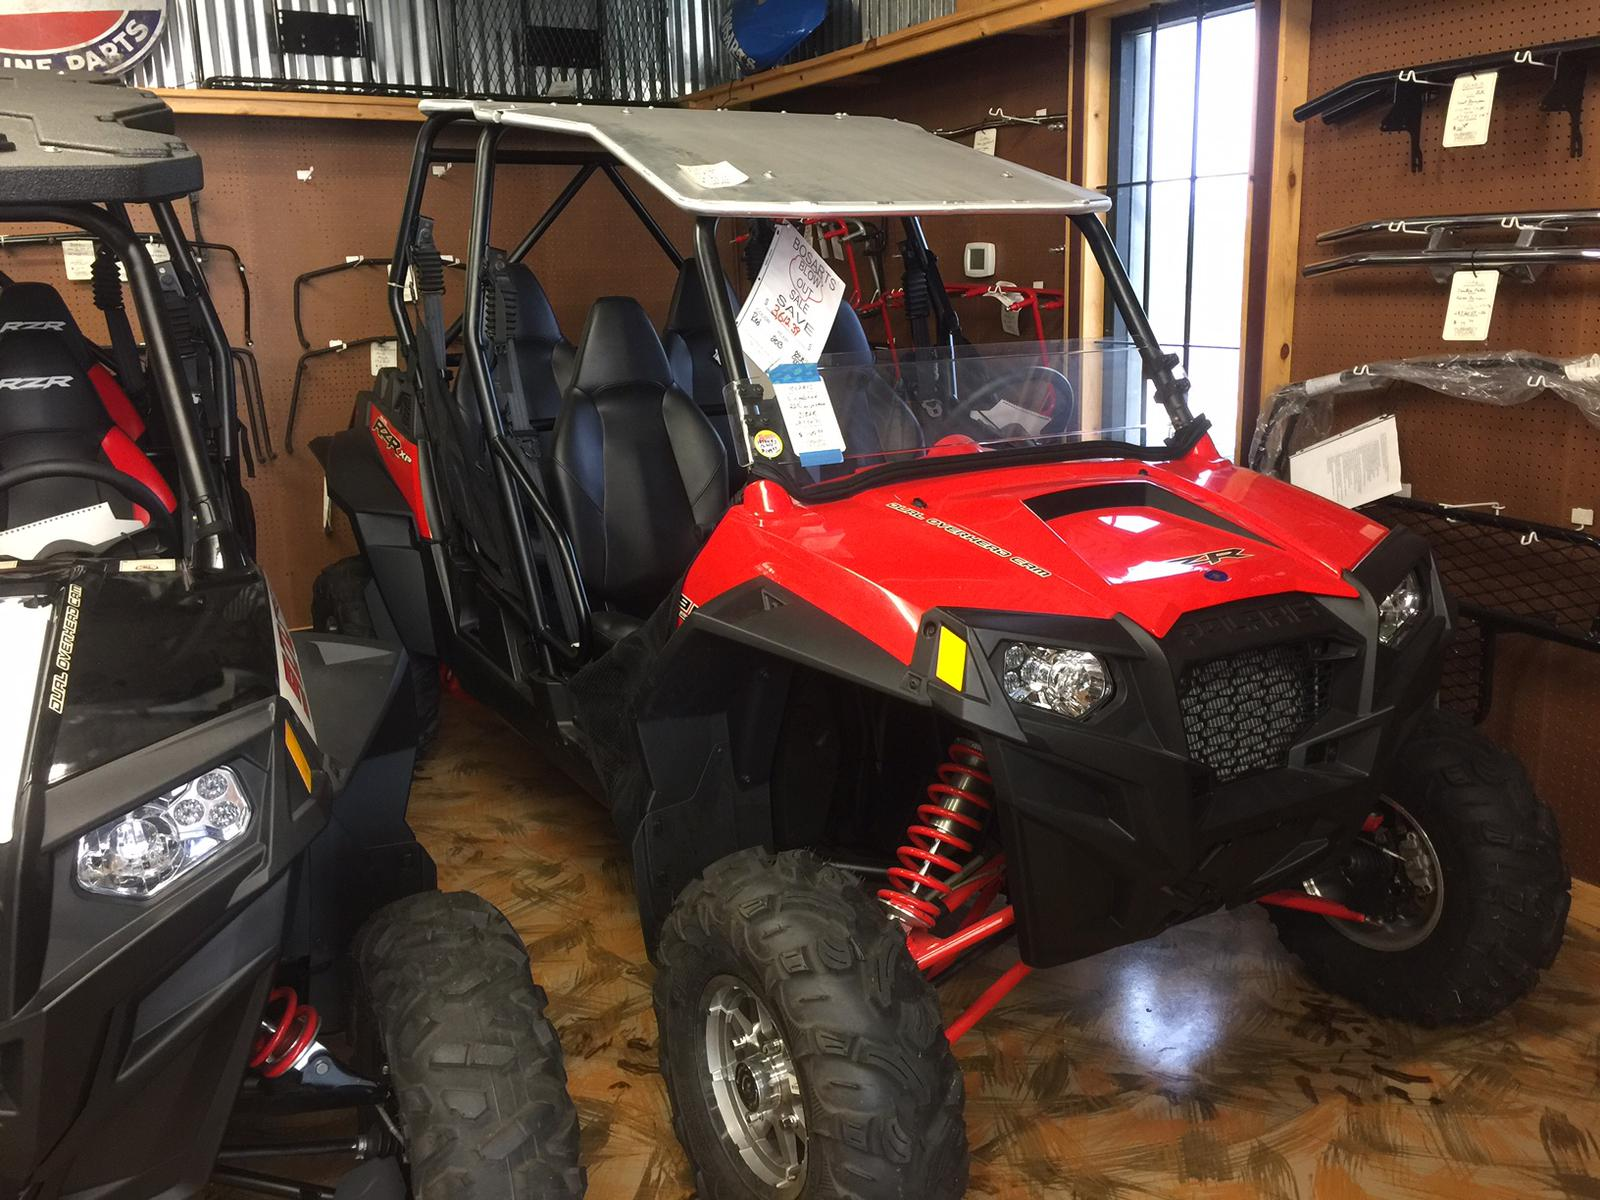 medium resolution of 2013 polaris industries rzr xp 4 900 for sale in victoria tx victoria cycle shop bosart s polaris 800 794 2619